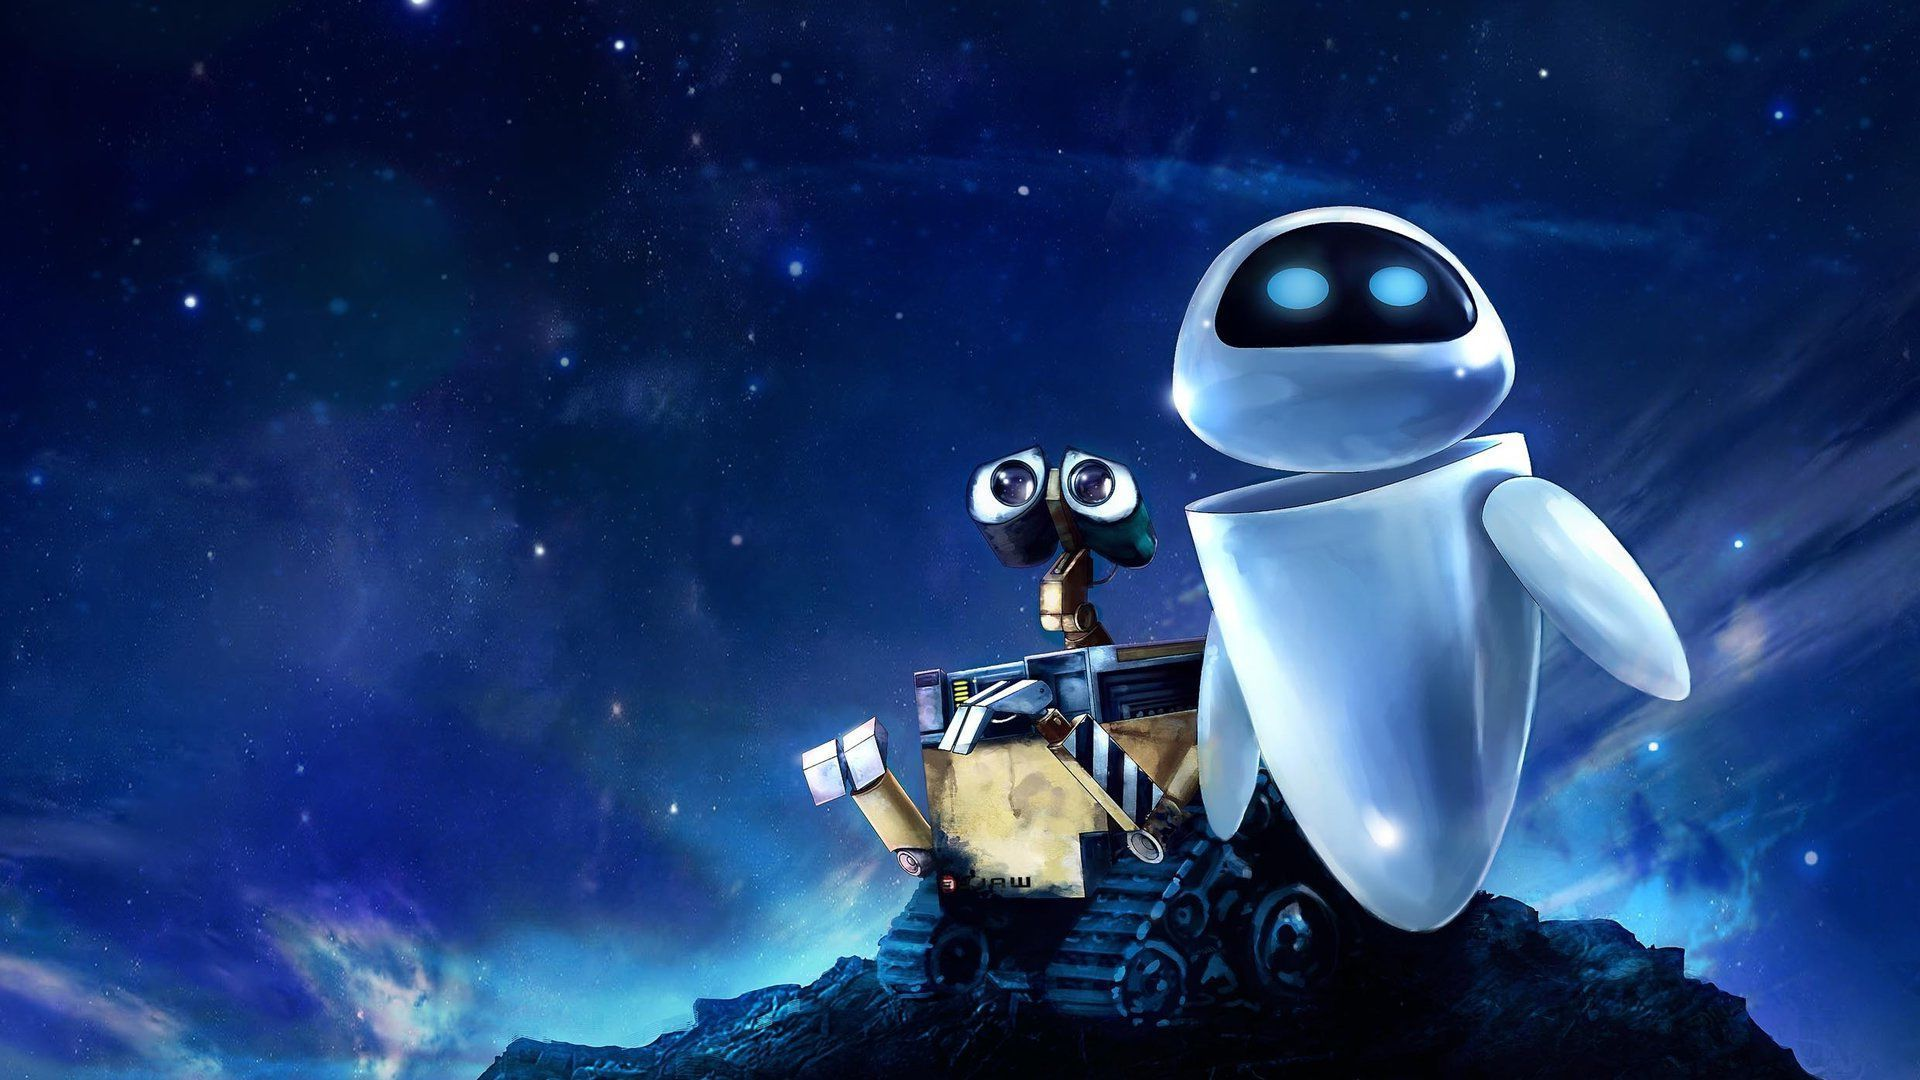 undefined wall e wallpaper (38 wallpapers) | adorable wallpapers